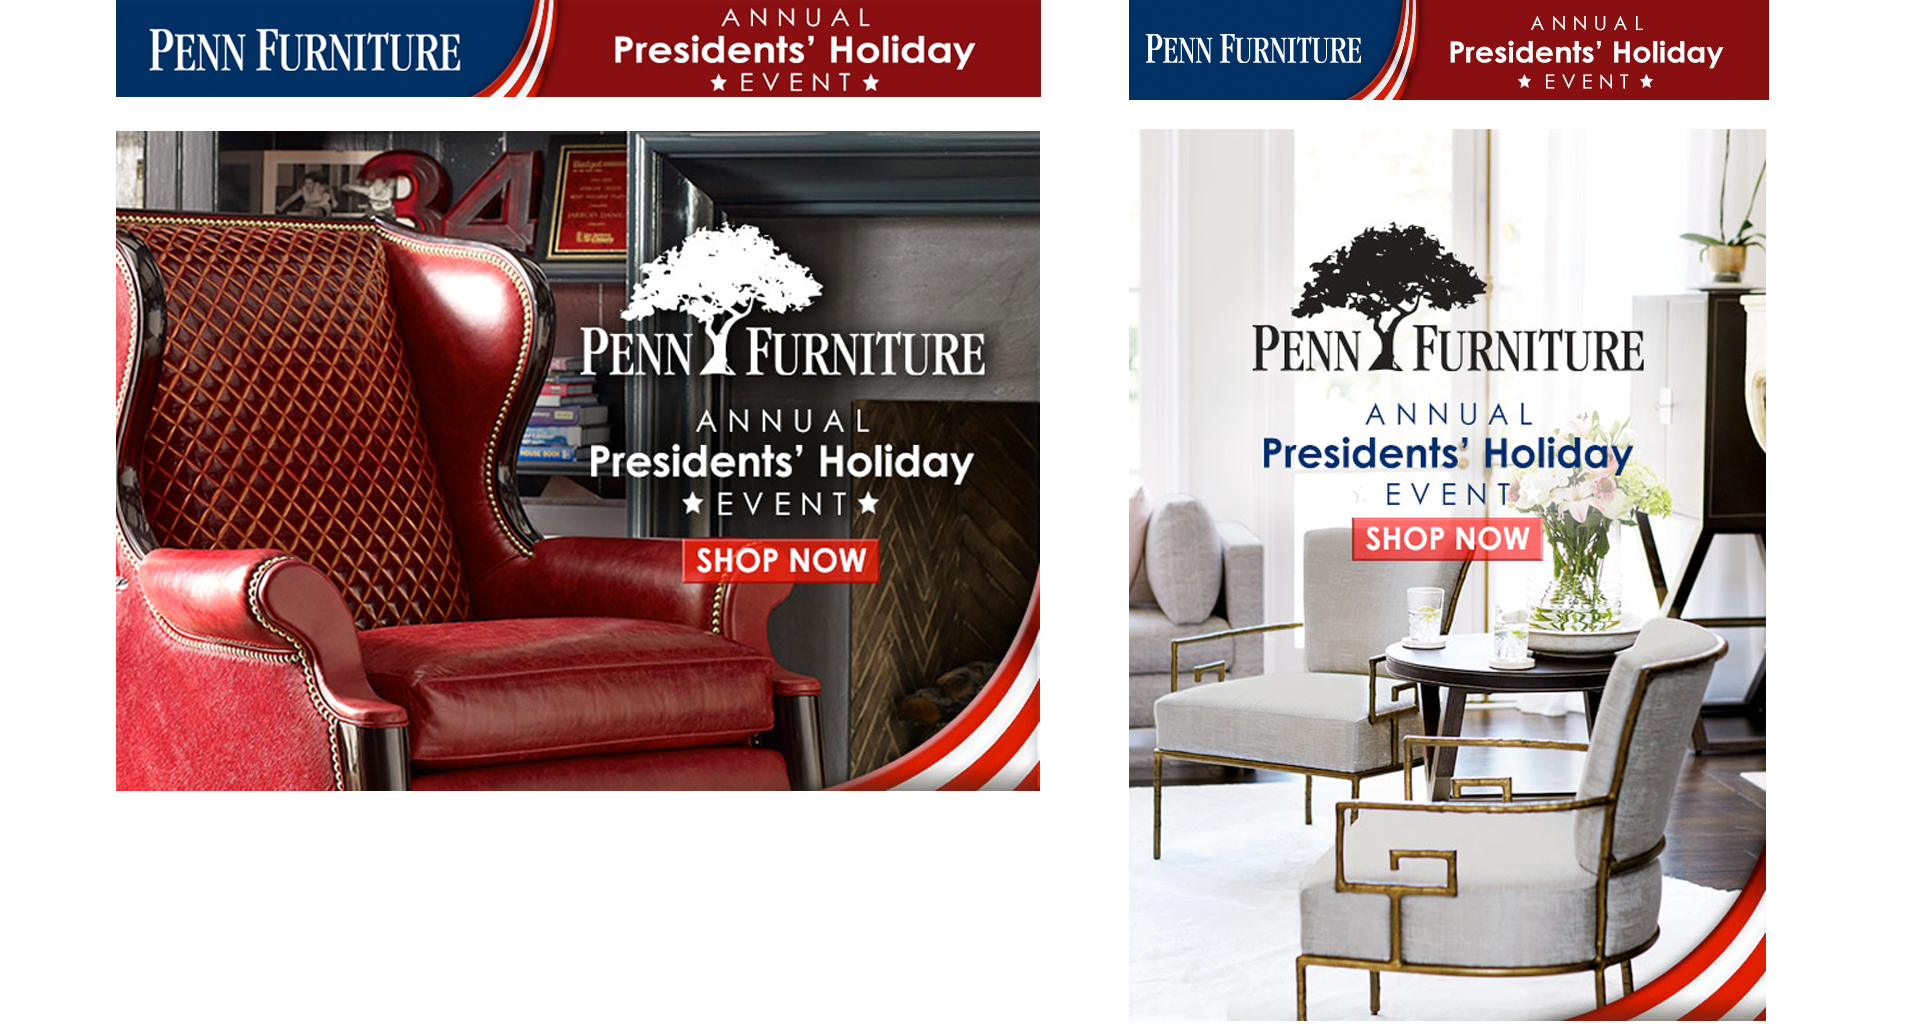 Penn Furniture Presidents' Holiday Event